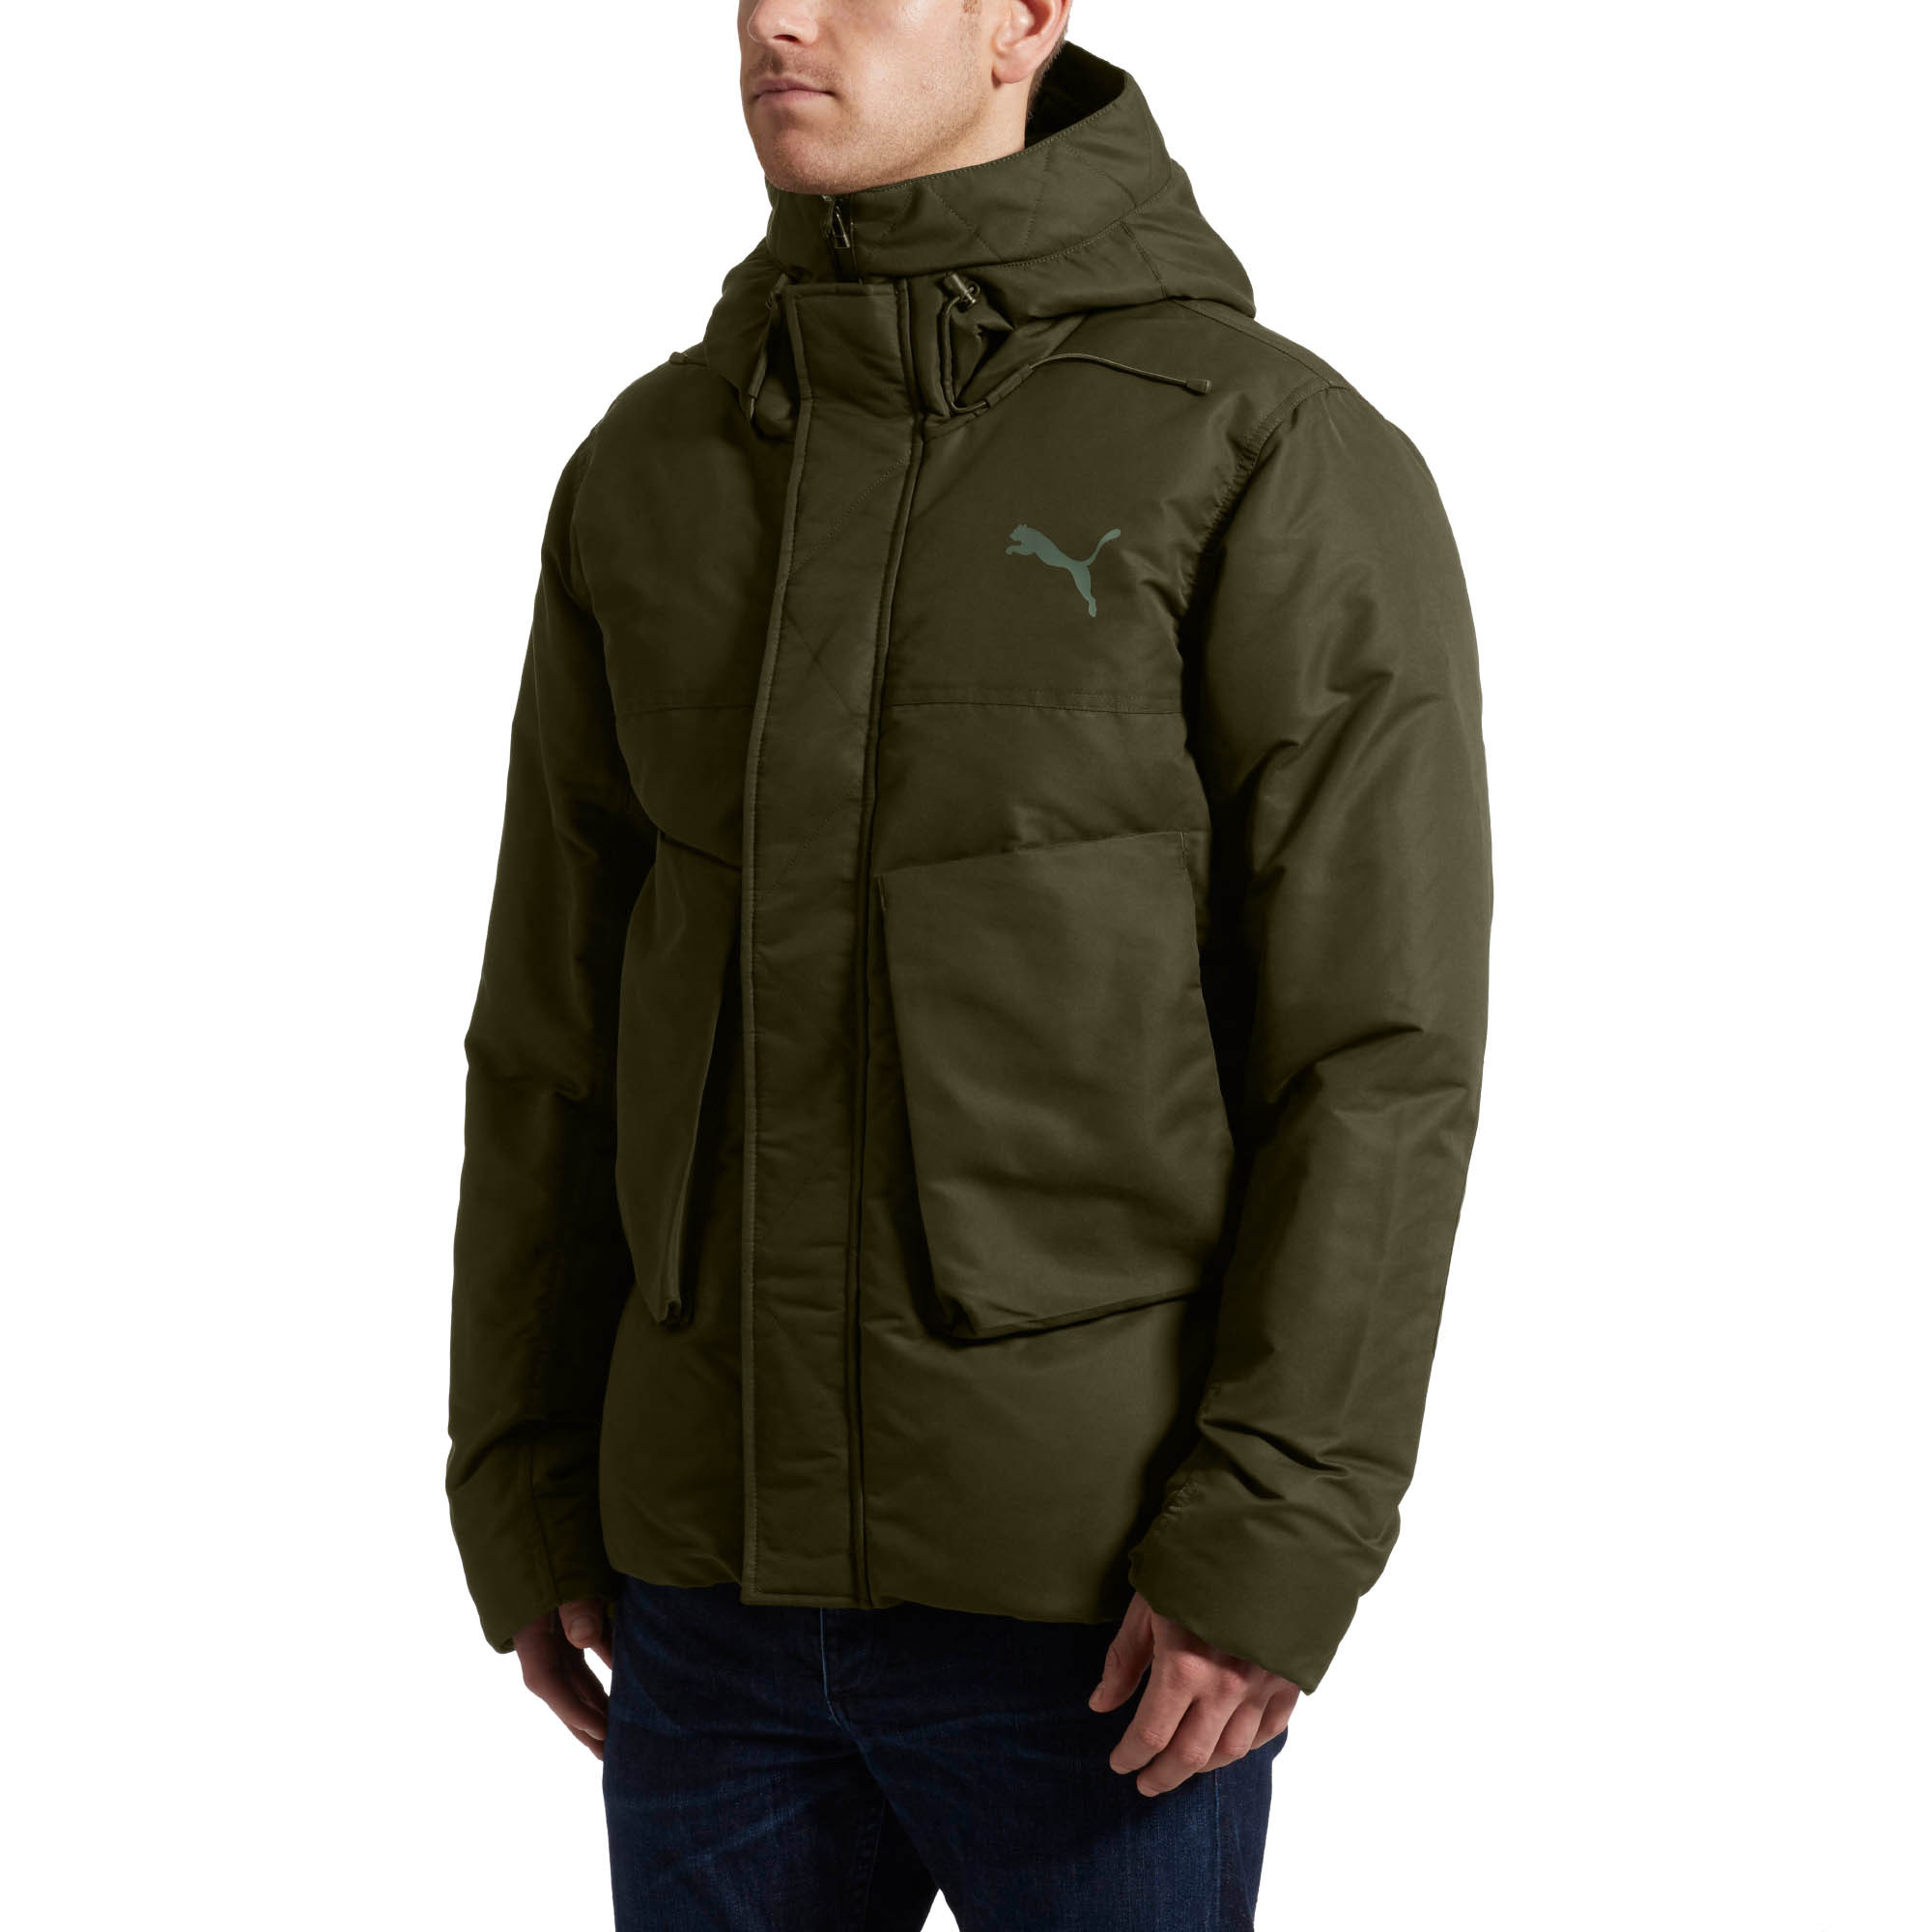 16942502c692 Official Puma Store  PUMA StreetStyle 480 Hooded Down Jacket ...